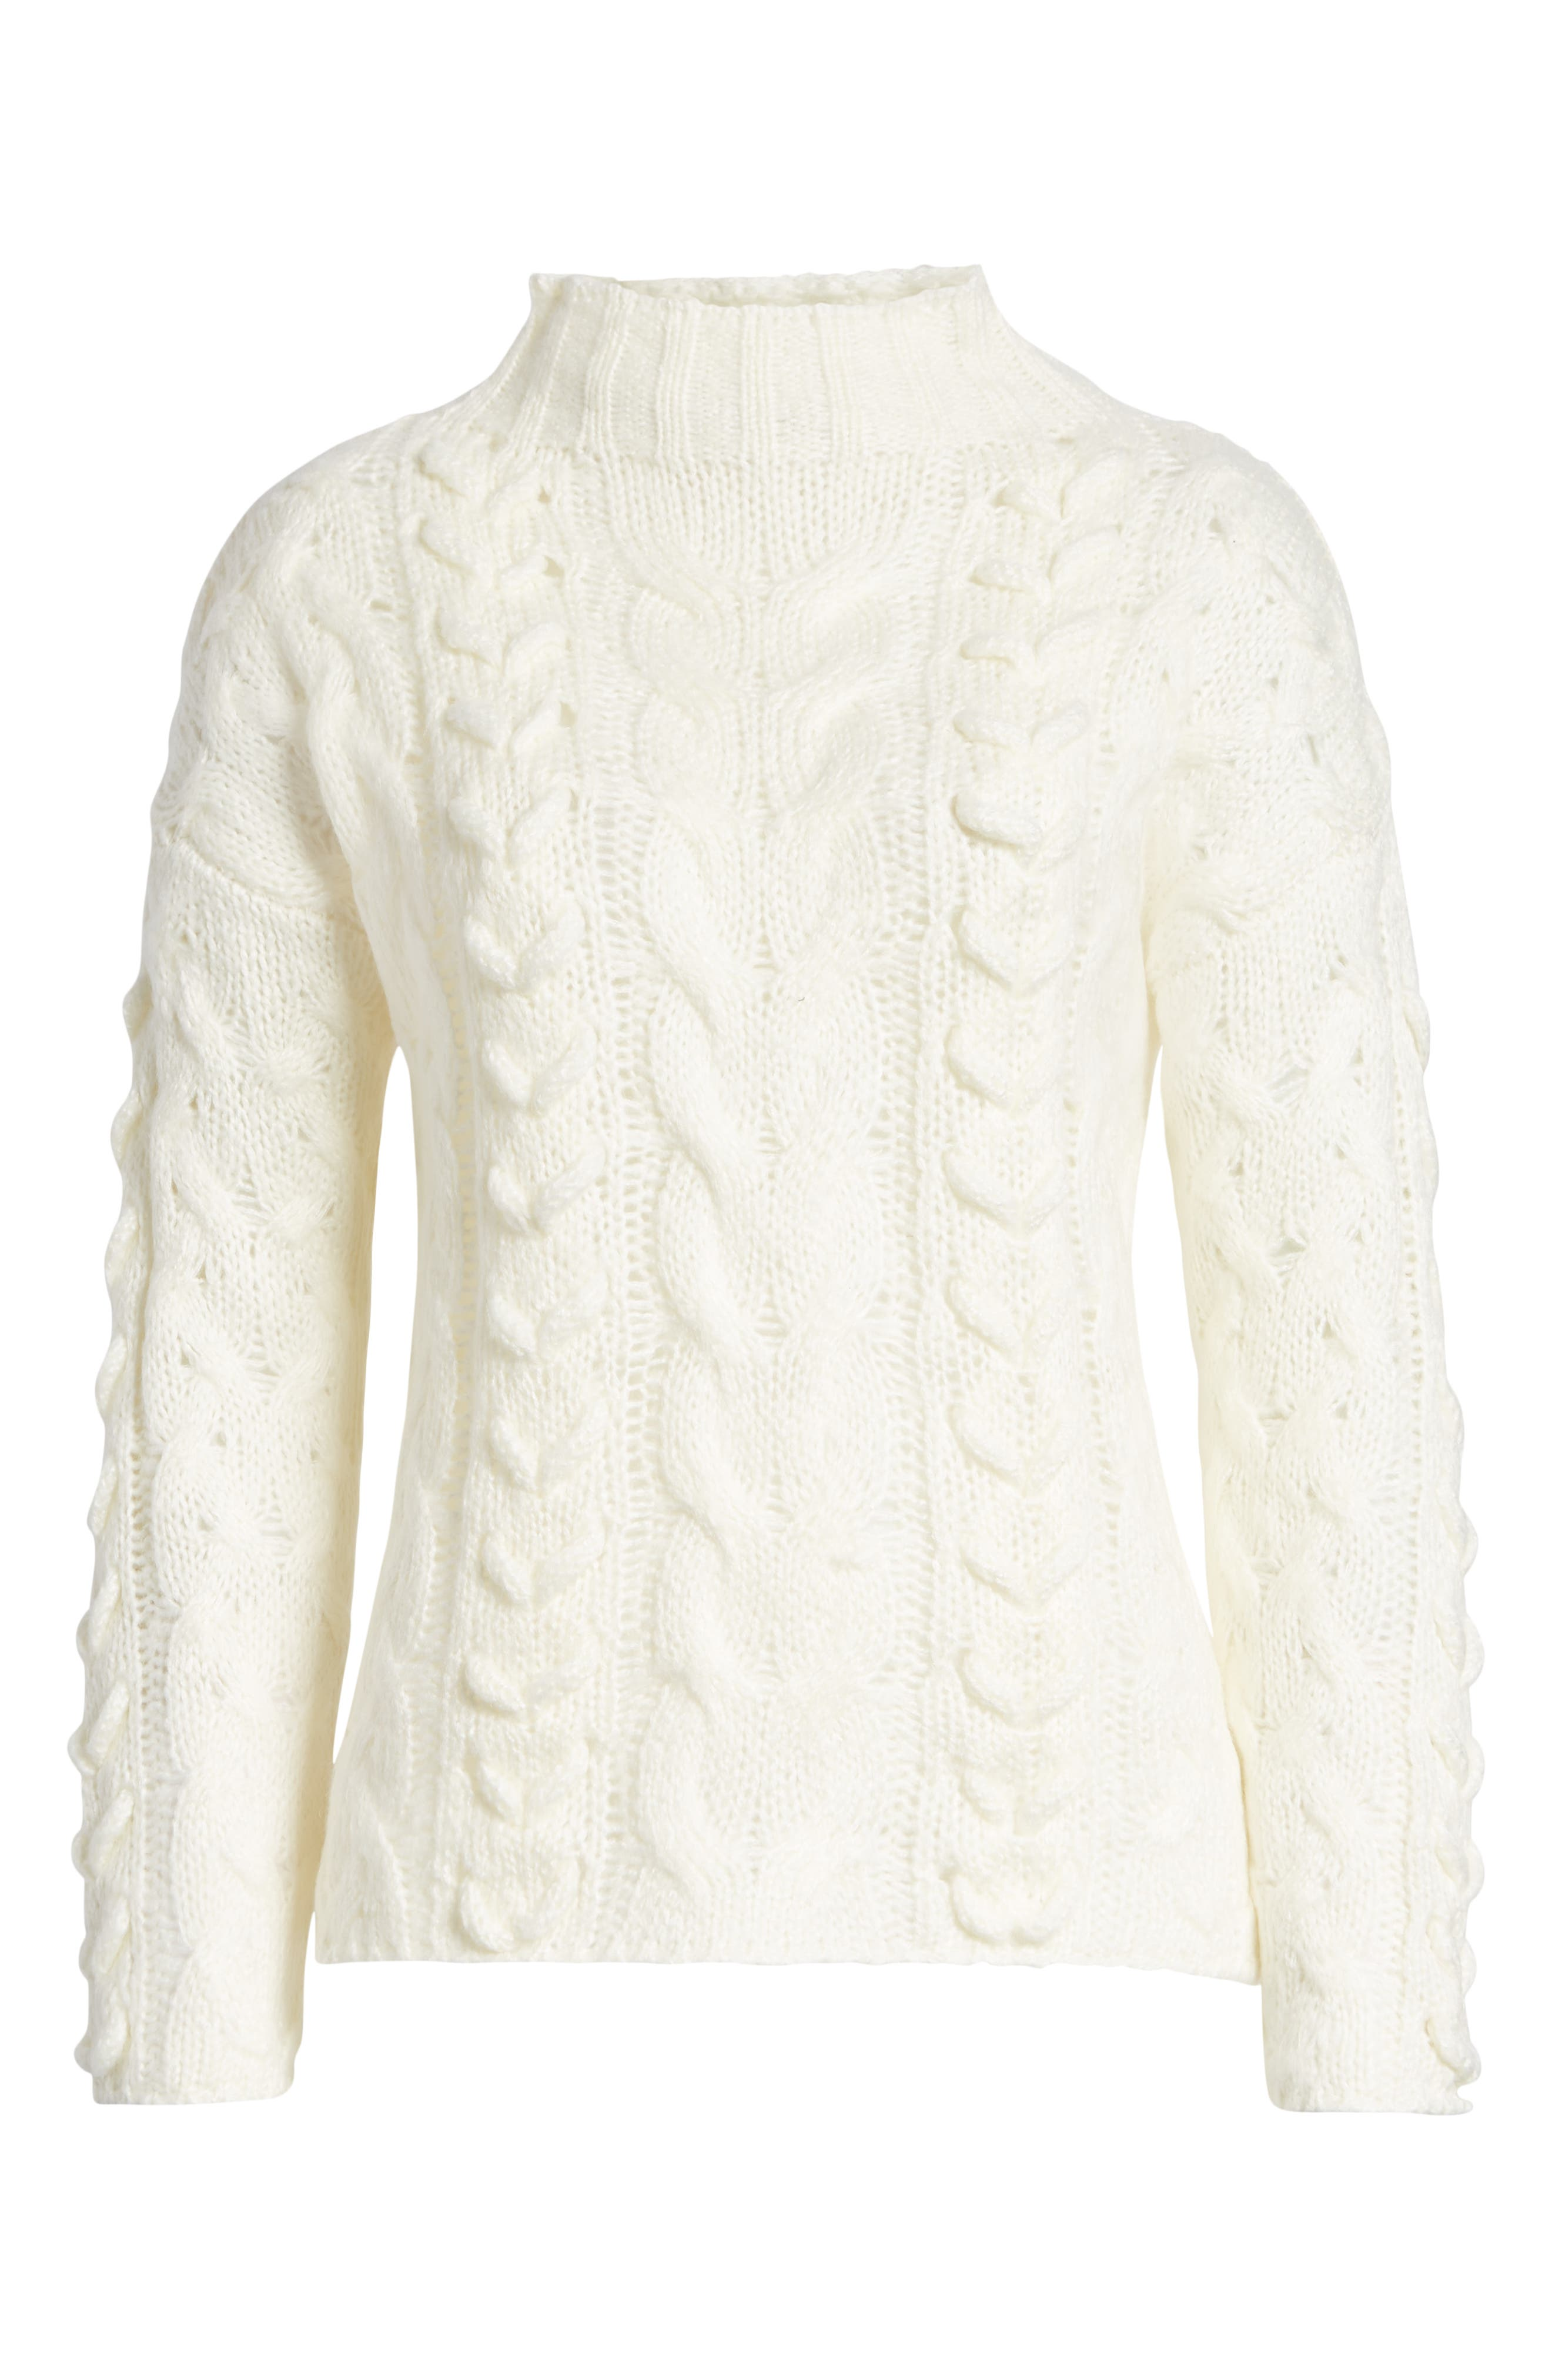 Braided Cable Knit Sweater,                             Alternate thumbnail 6, color,                             IVORY